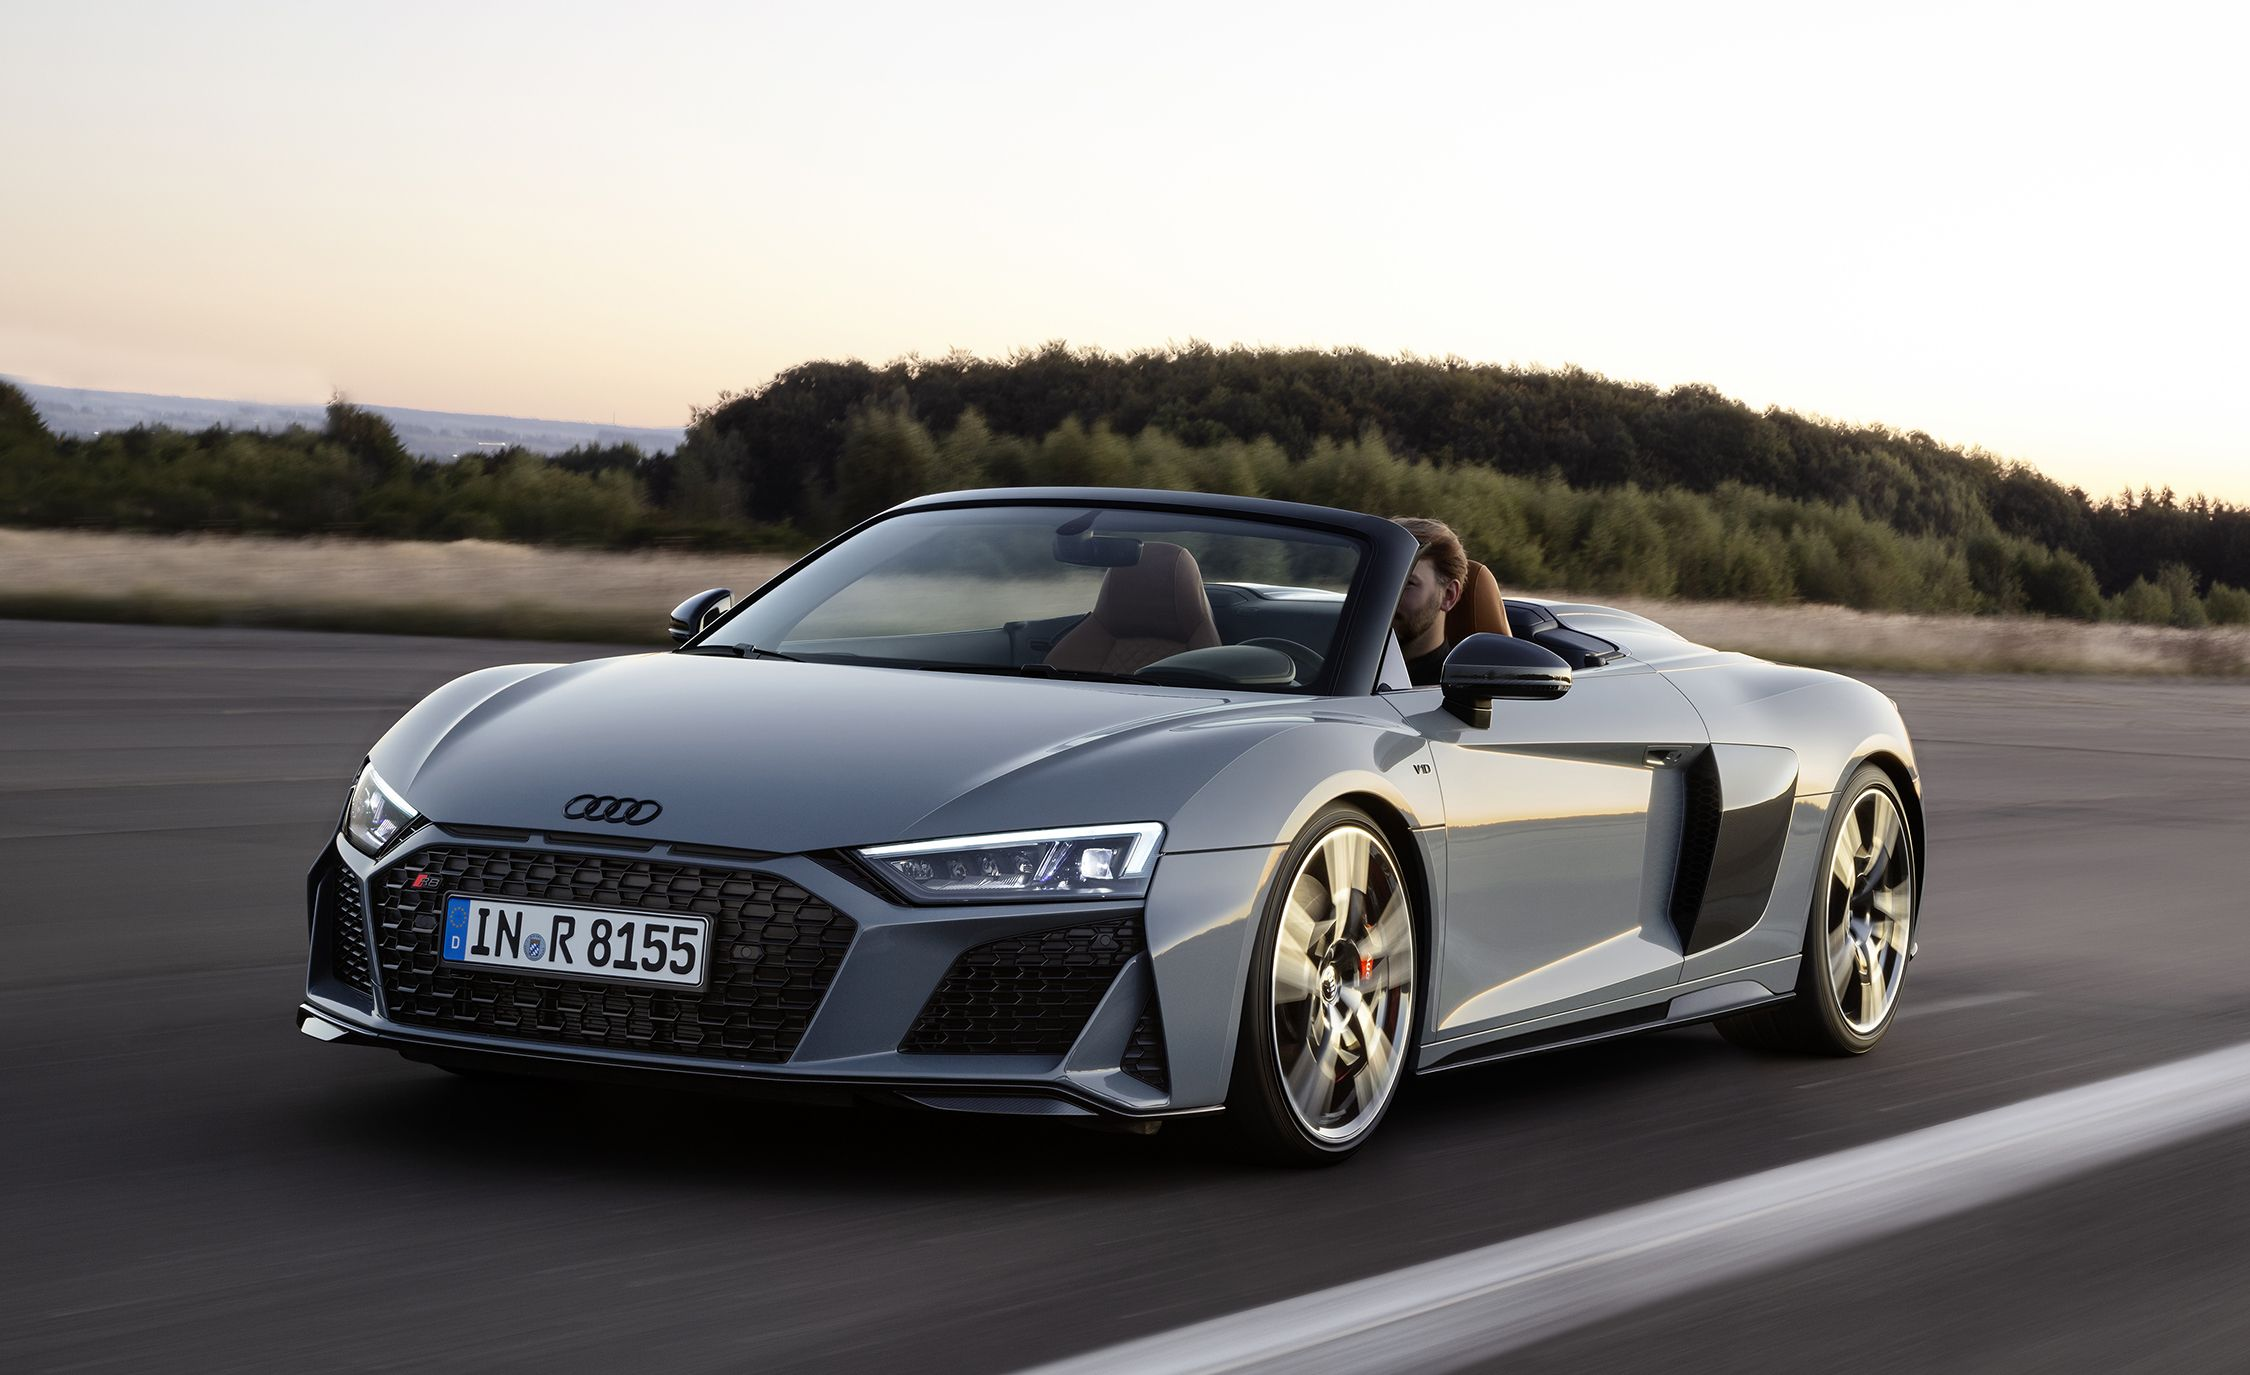 The 2019 Audi R8 Supercar Updated to Look Better, Drive Better